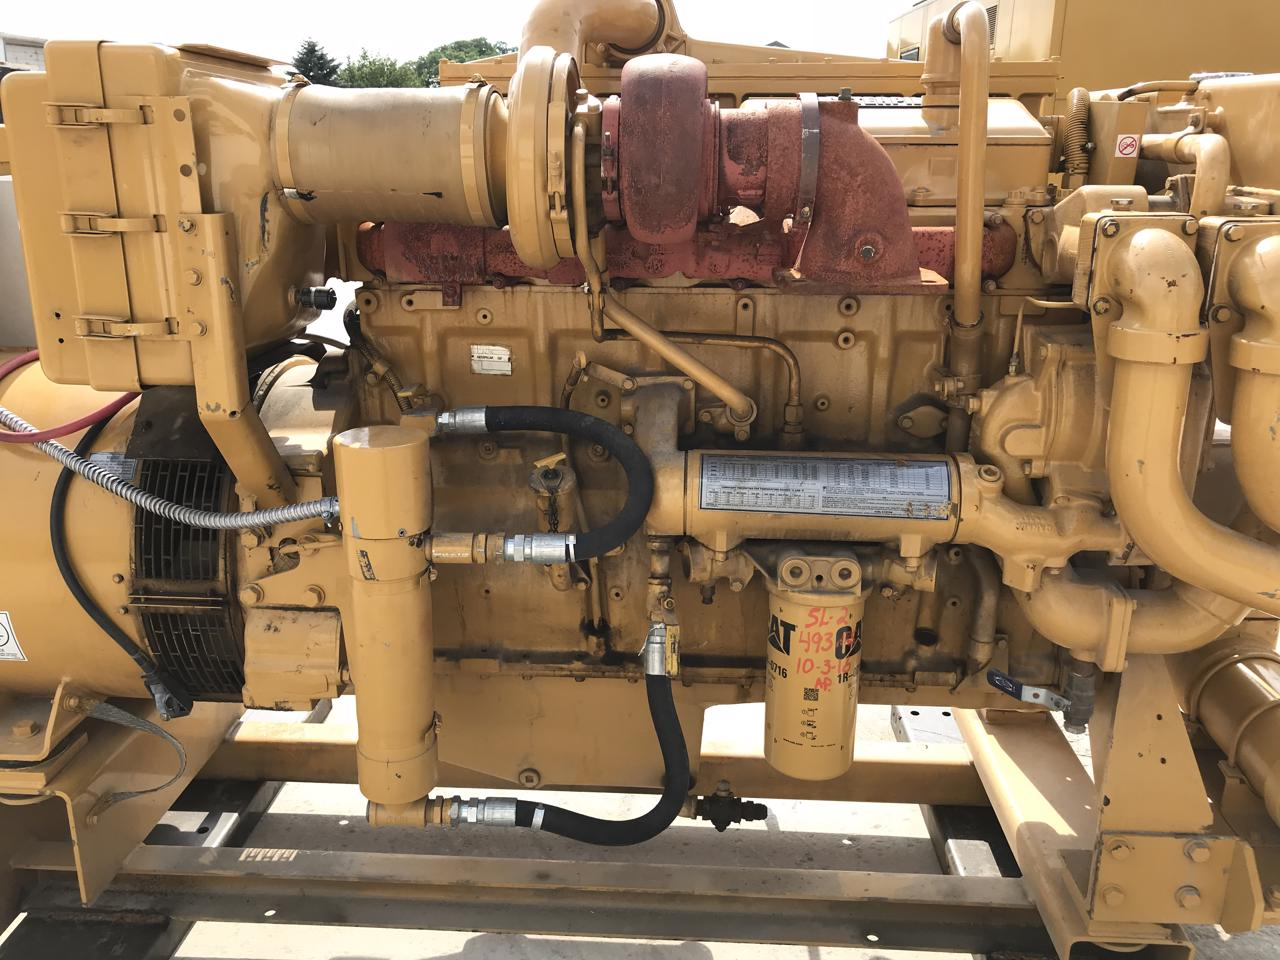 _350 kW Caterpillar 3406 Generator Set, Year 1997, 3 Phase, Low Hours, 208  volts